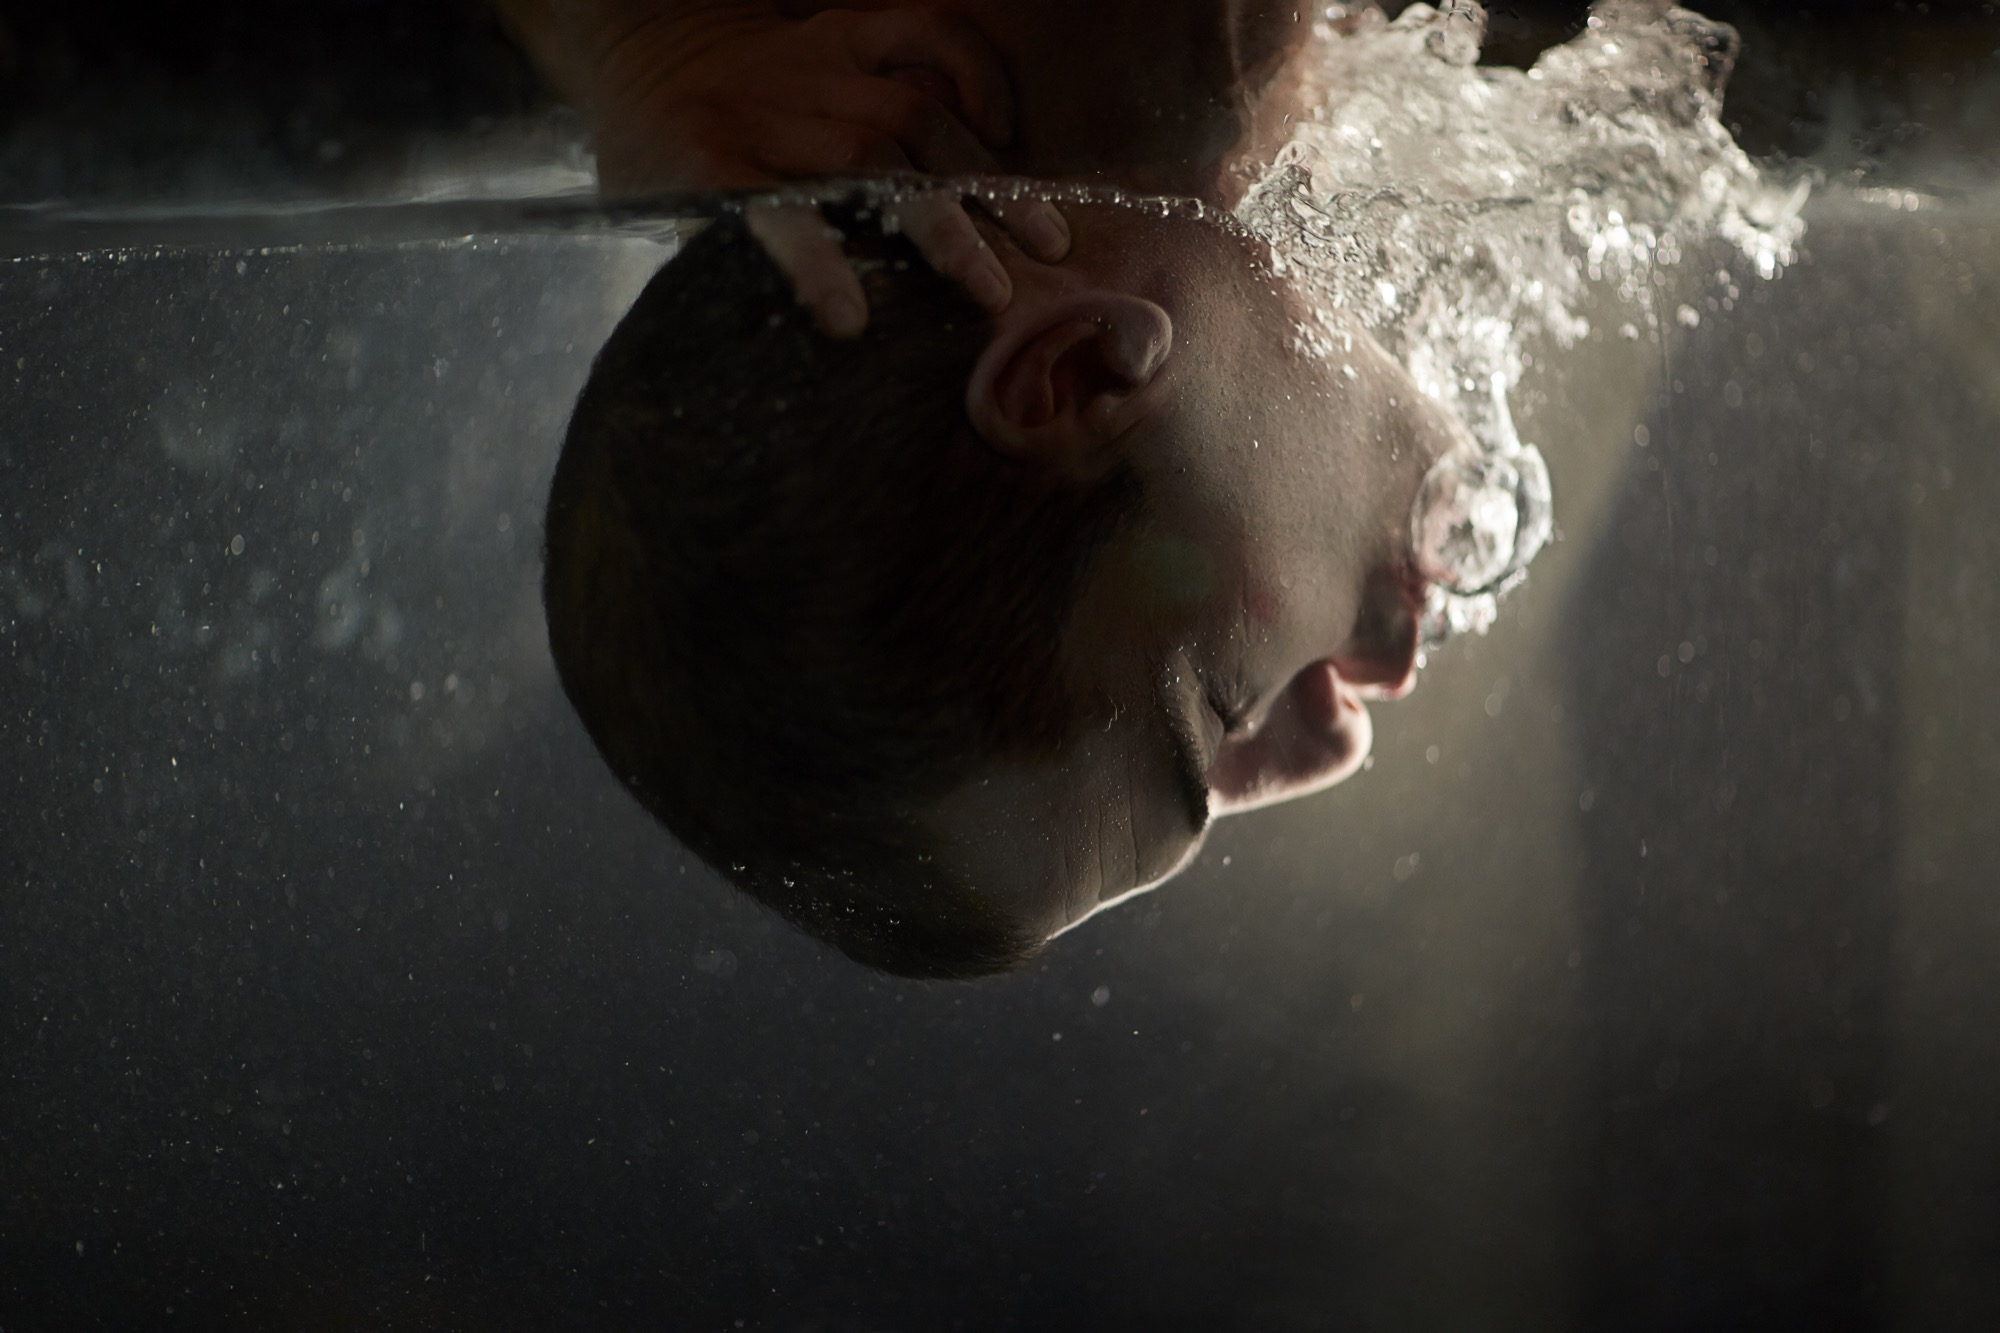 A man's head being pushed underwater.